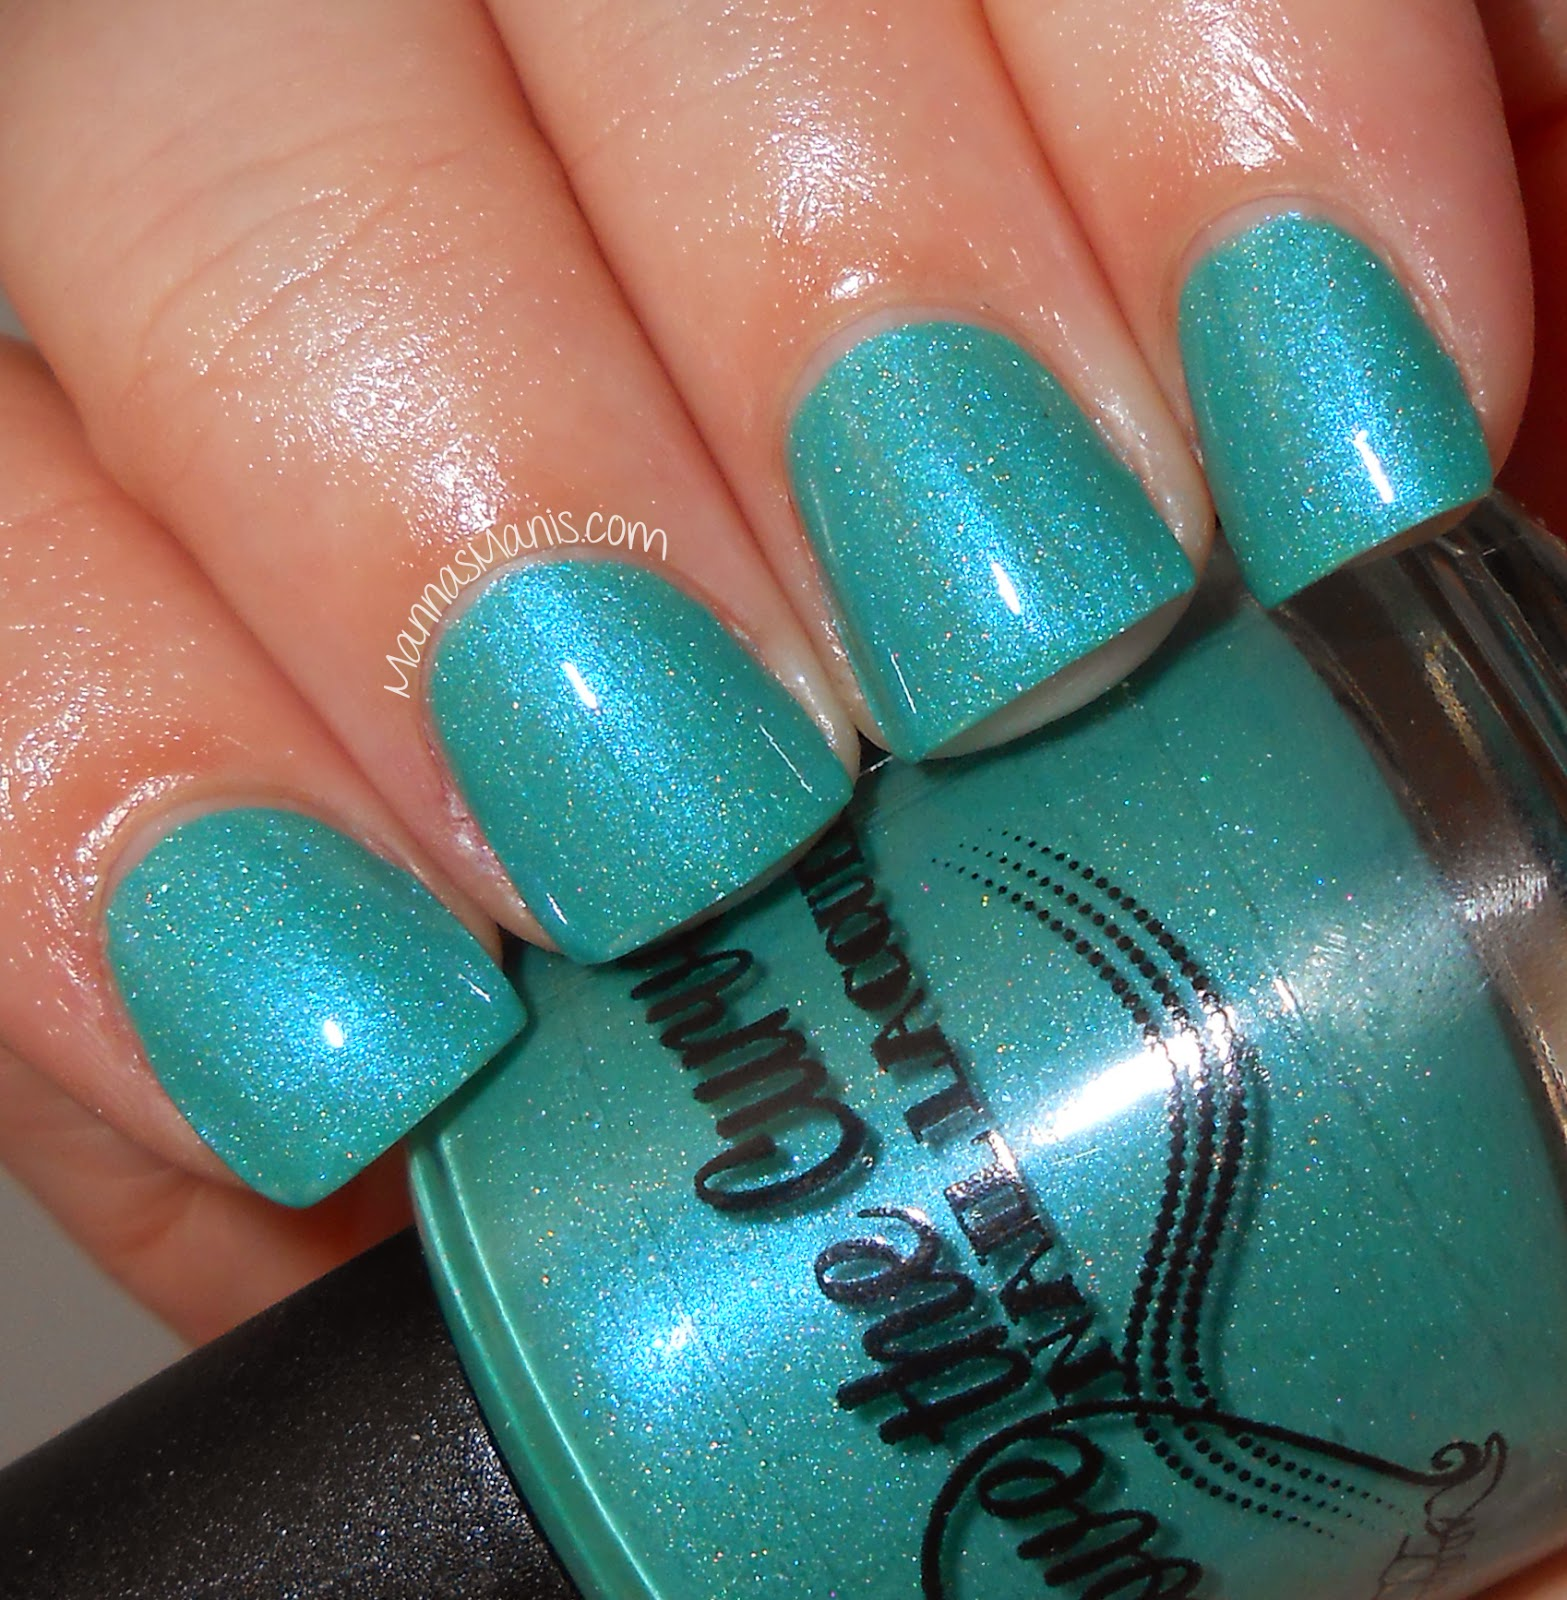 above the curve kahuna, teal holographic indie nail polish